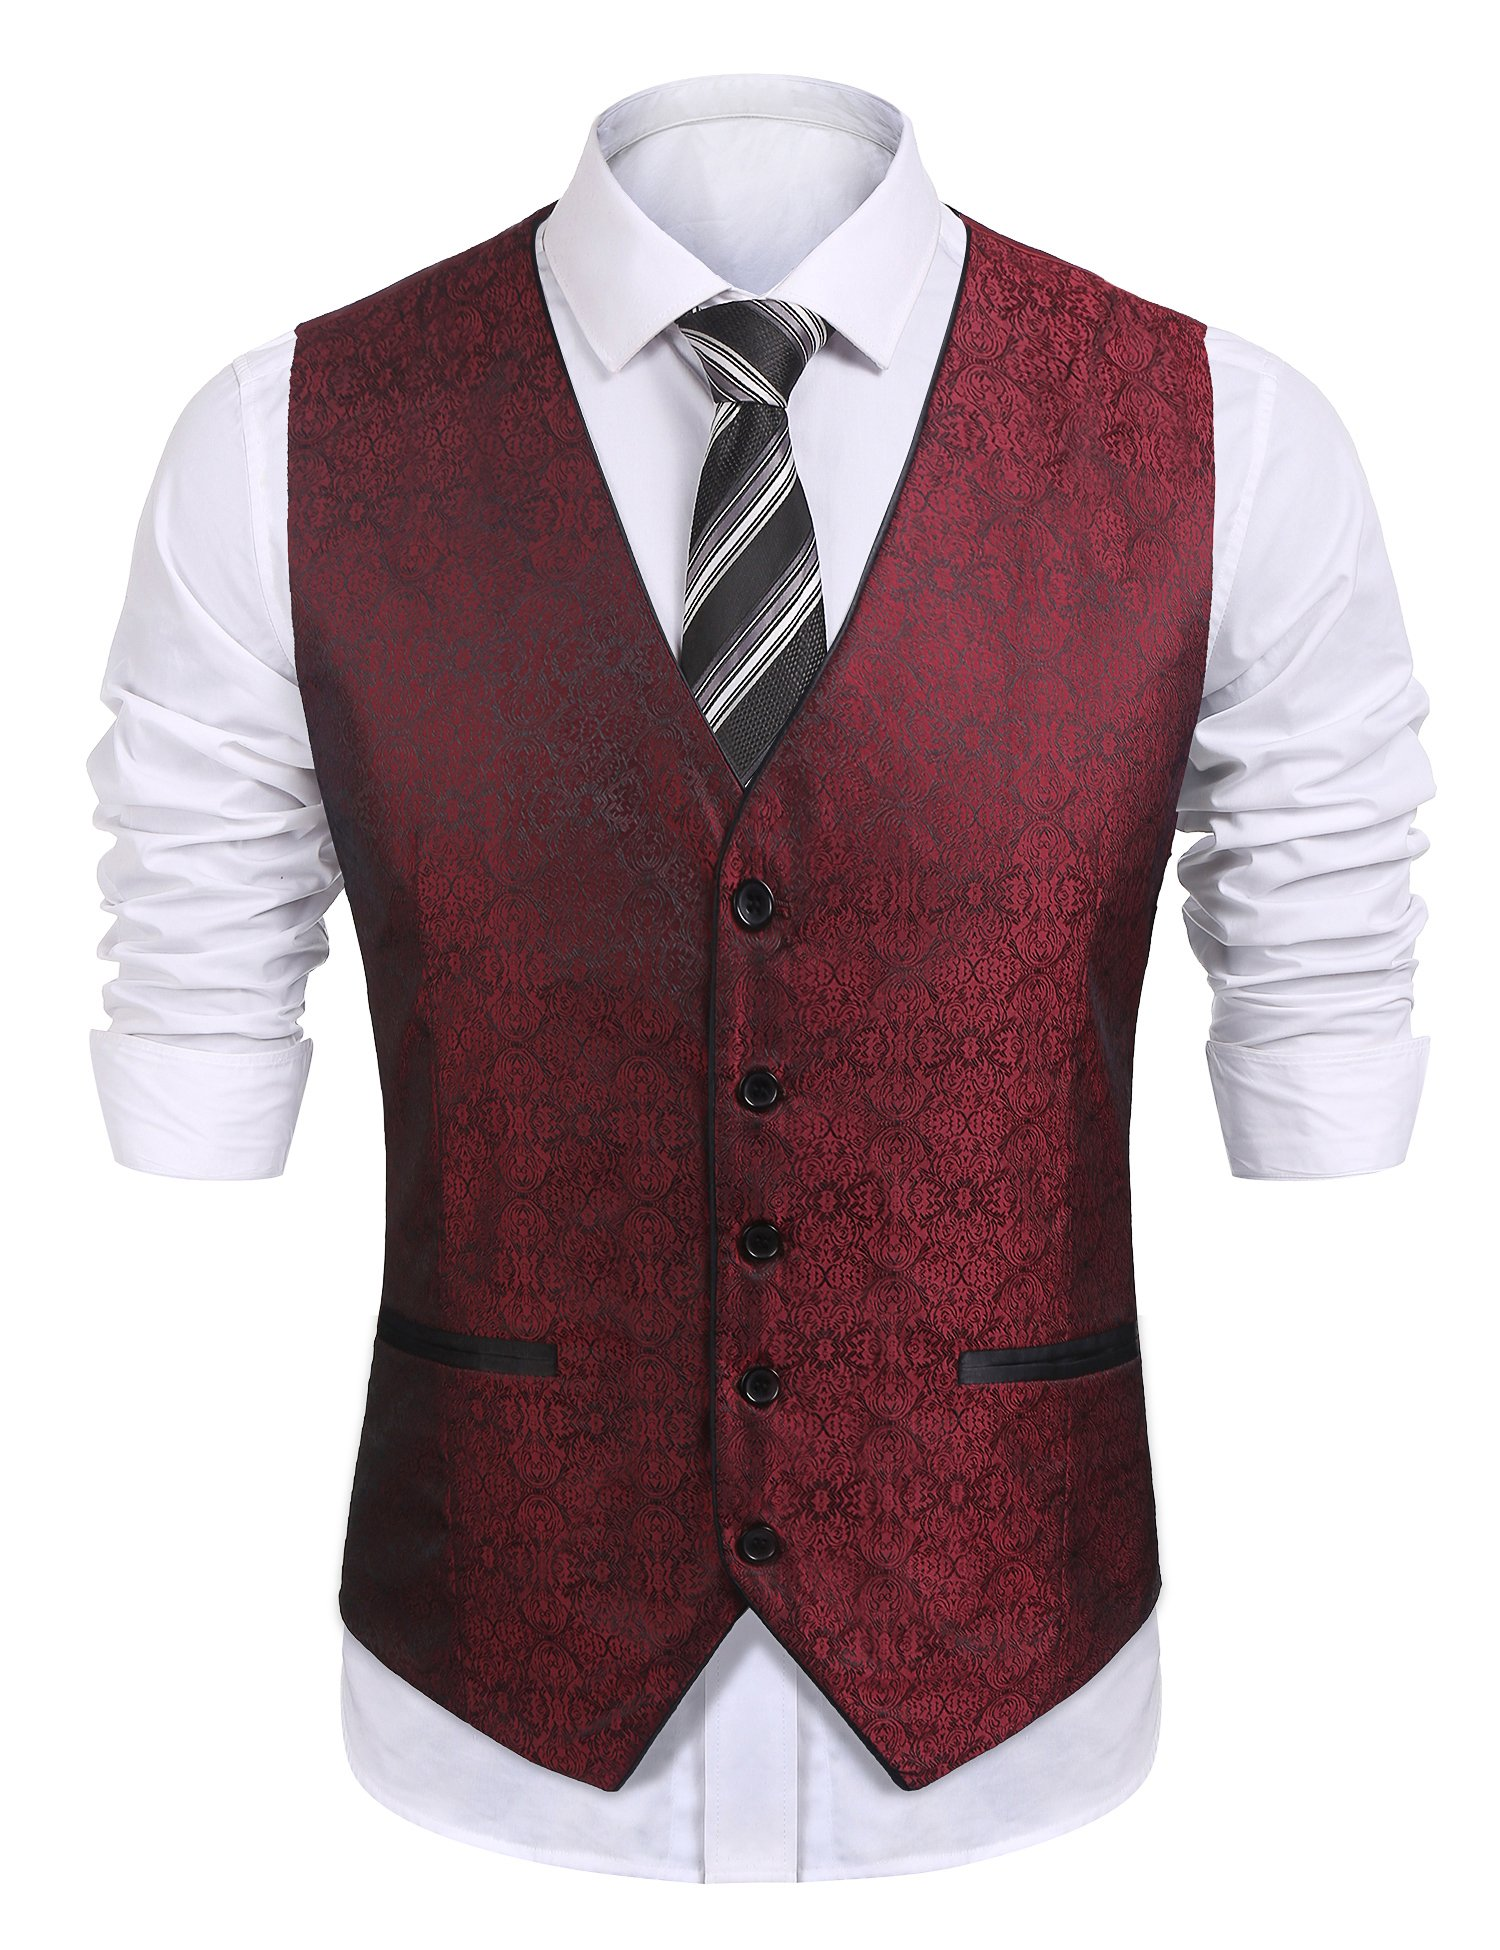 COOFANDY Mens Paisley Embroidery Dress Tuxedo Vest Wedding Formal Waistcoat, Red, Small by COOFANDY